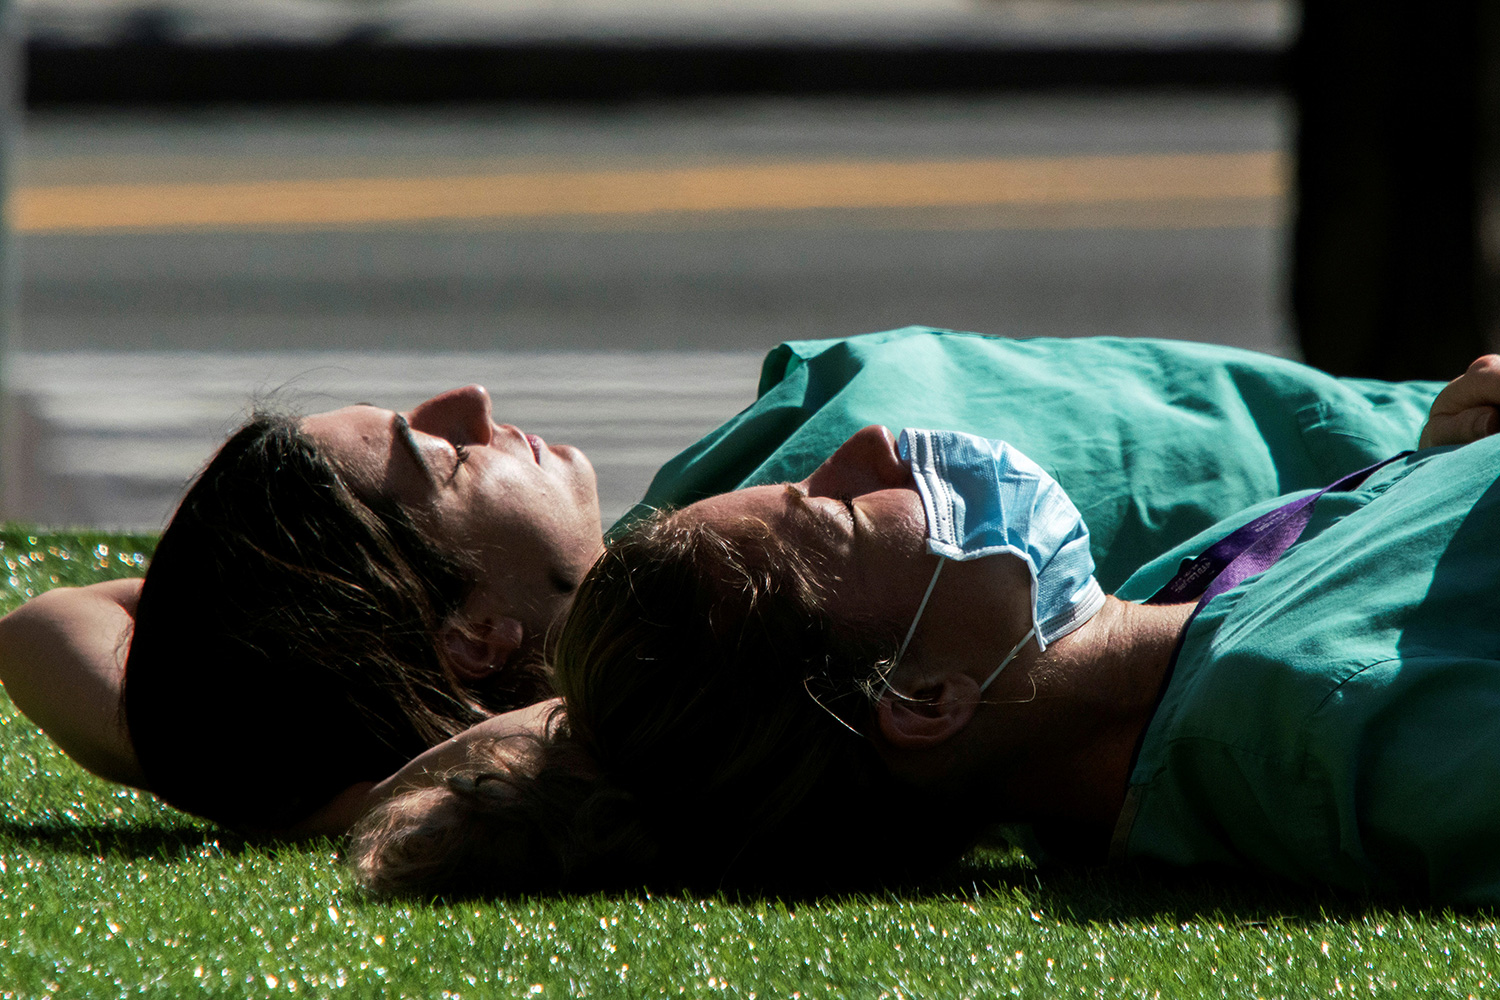 The photo shows two health workers laying on the grass in the warm spring sun.